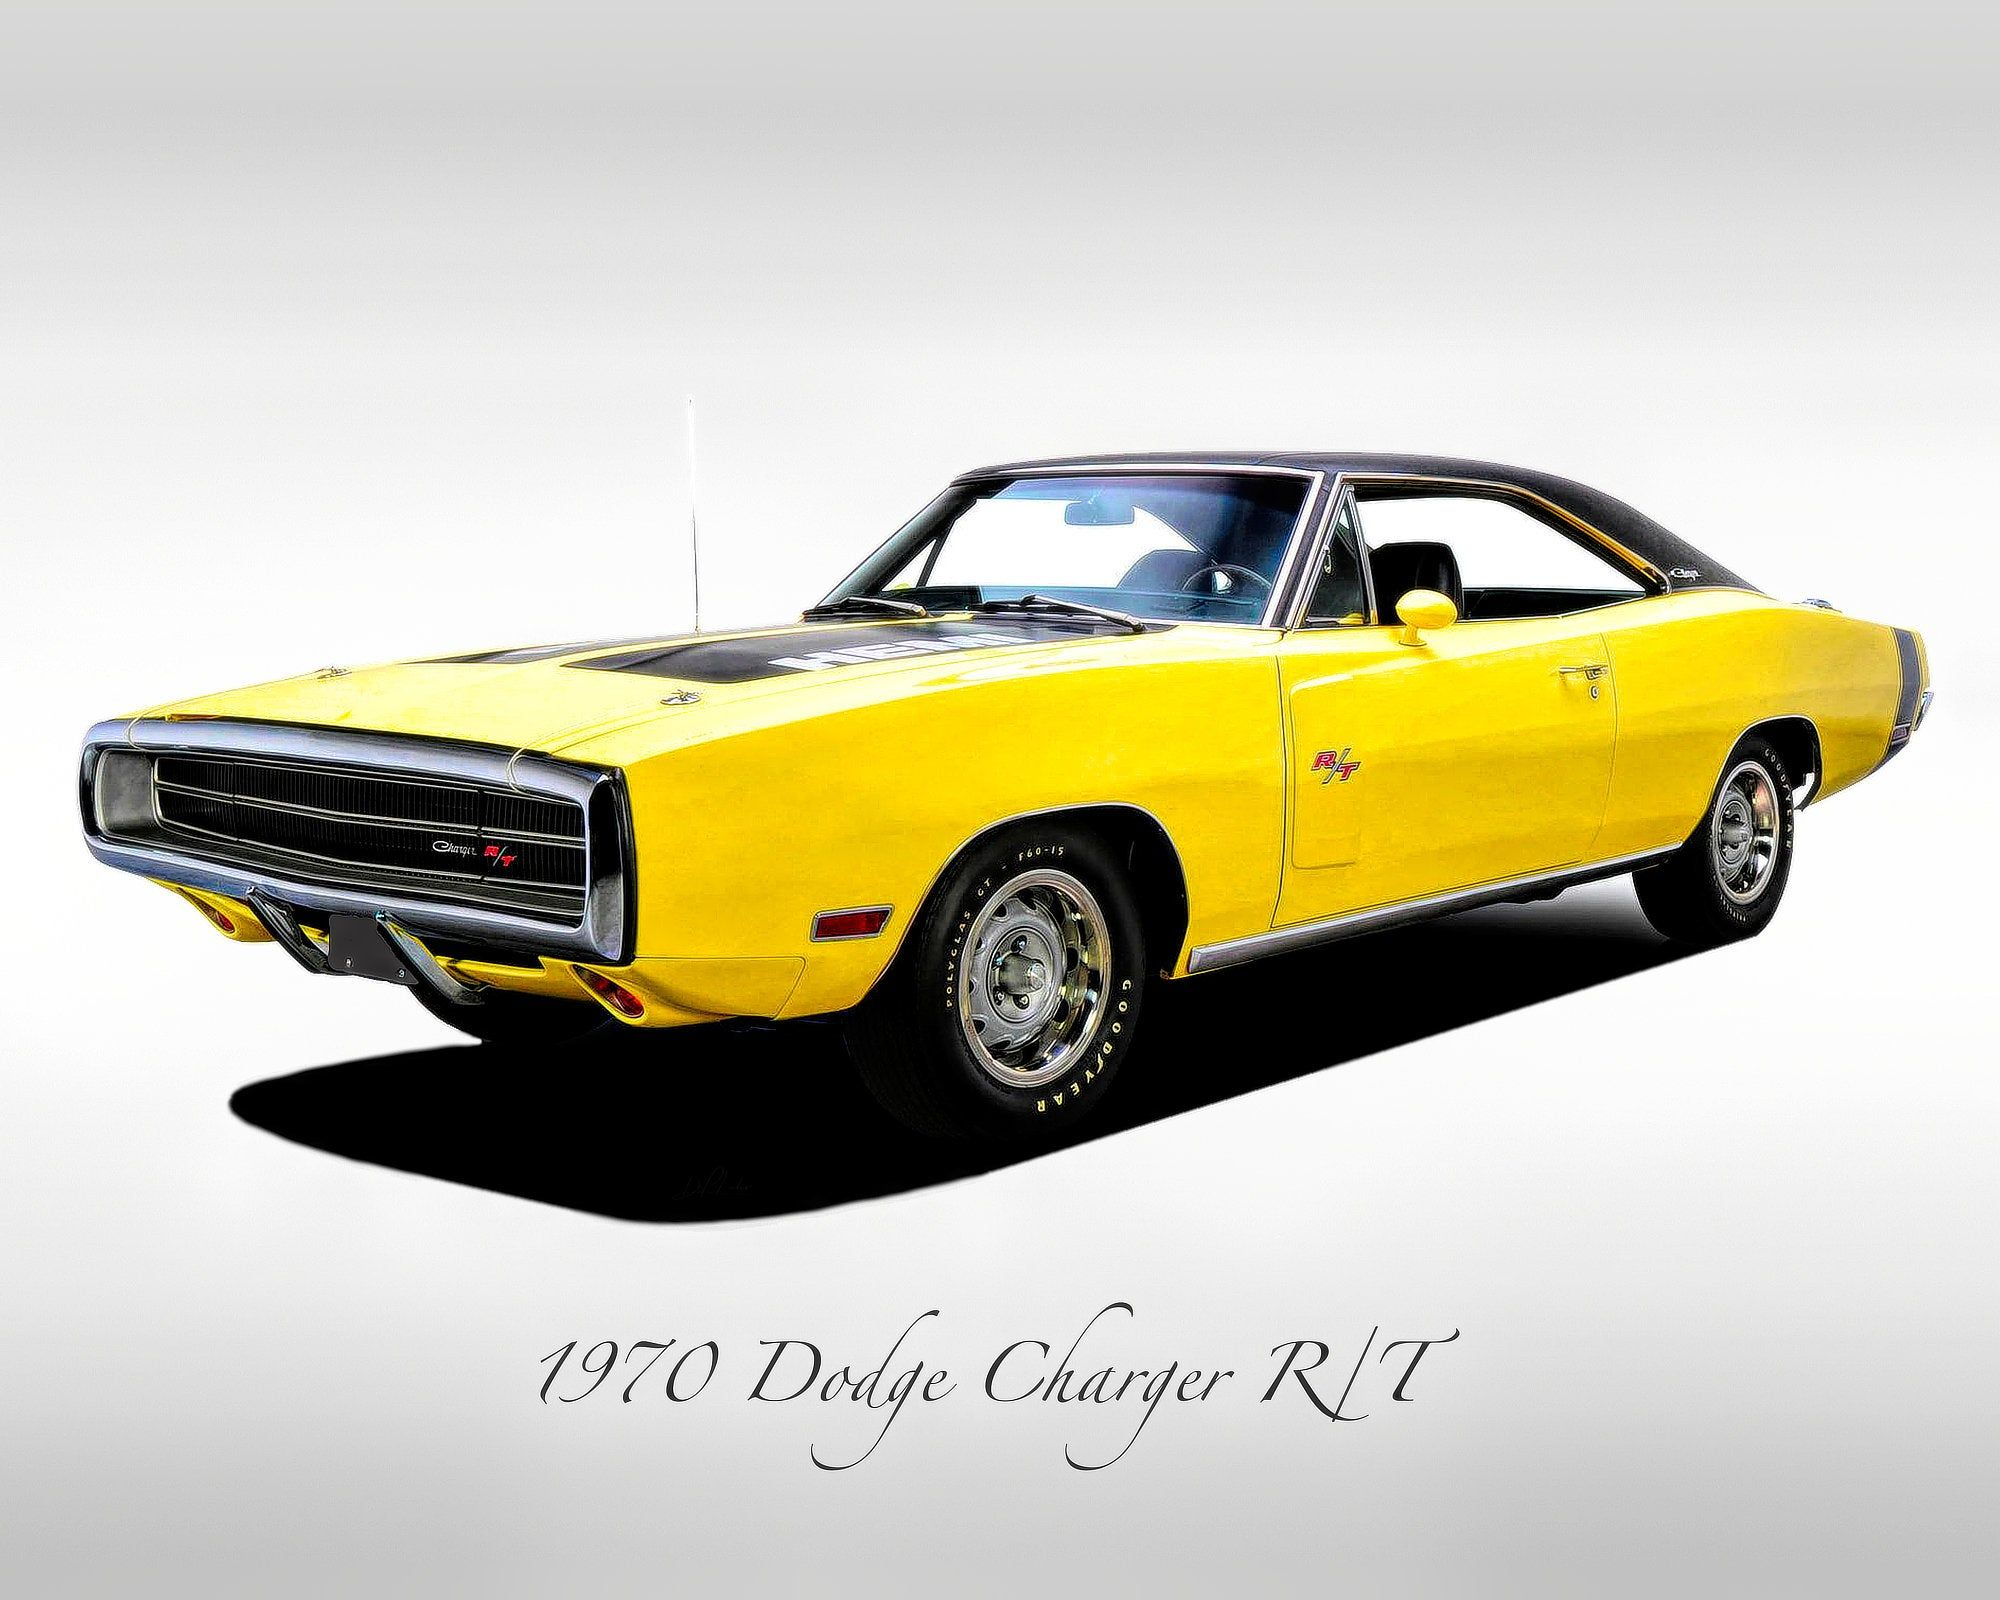 Classic Cars – 1970 Dodge Charger R/T Yellow – Muscle Car – Print